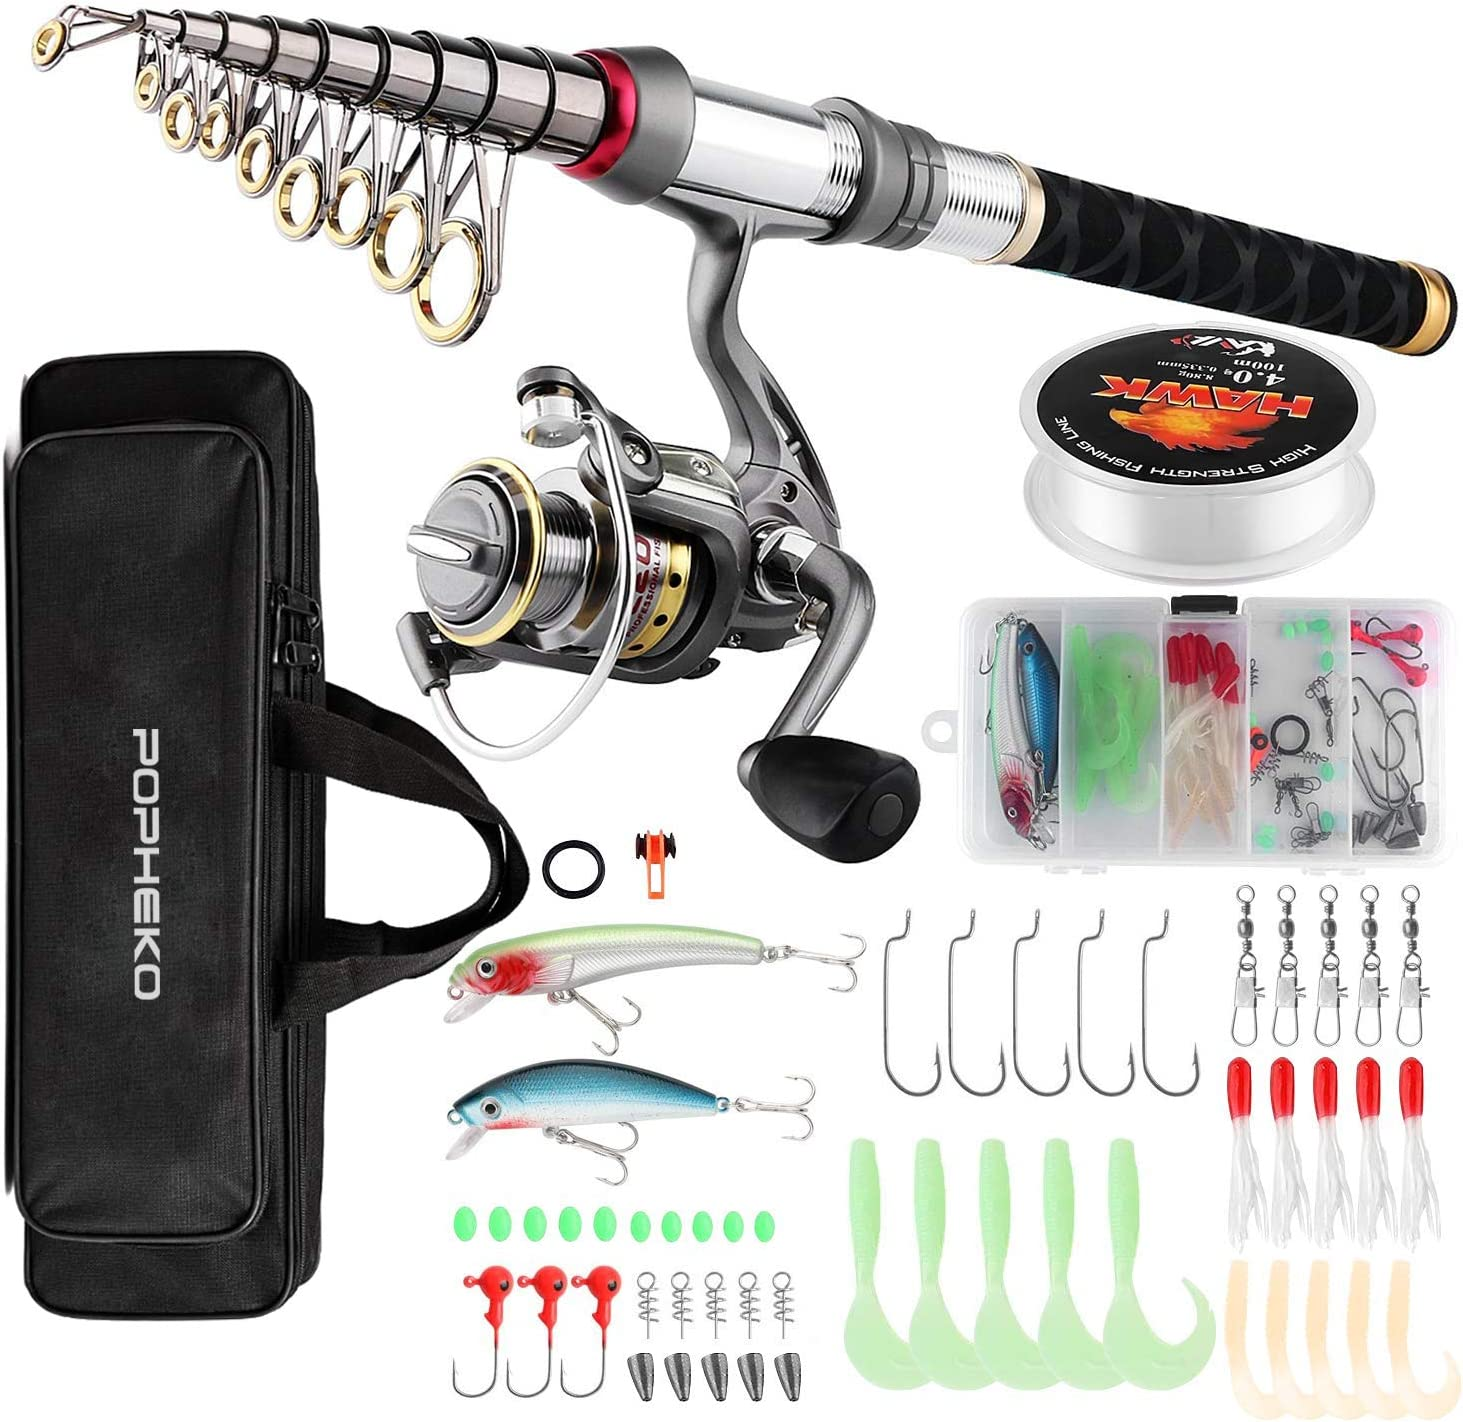 Amazon Com Mouhike Fishing Rod Reel Combo Full Kit Telescopic Fishing Pole Set Spinning Reel Line Lures Hooks And Fishing Carrier Bag Saltwater Freshwater Fishing Gear For Kids Adults Professional 1 8m 5 9ft